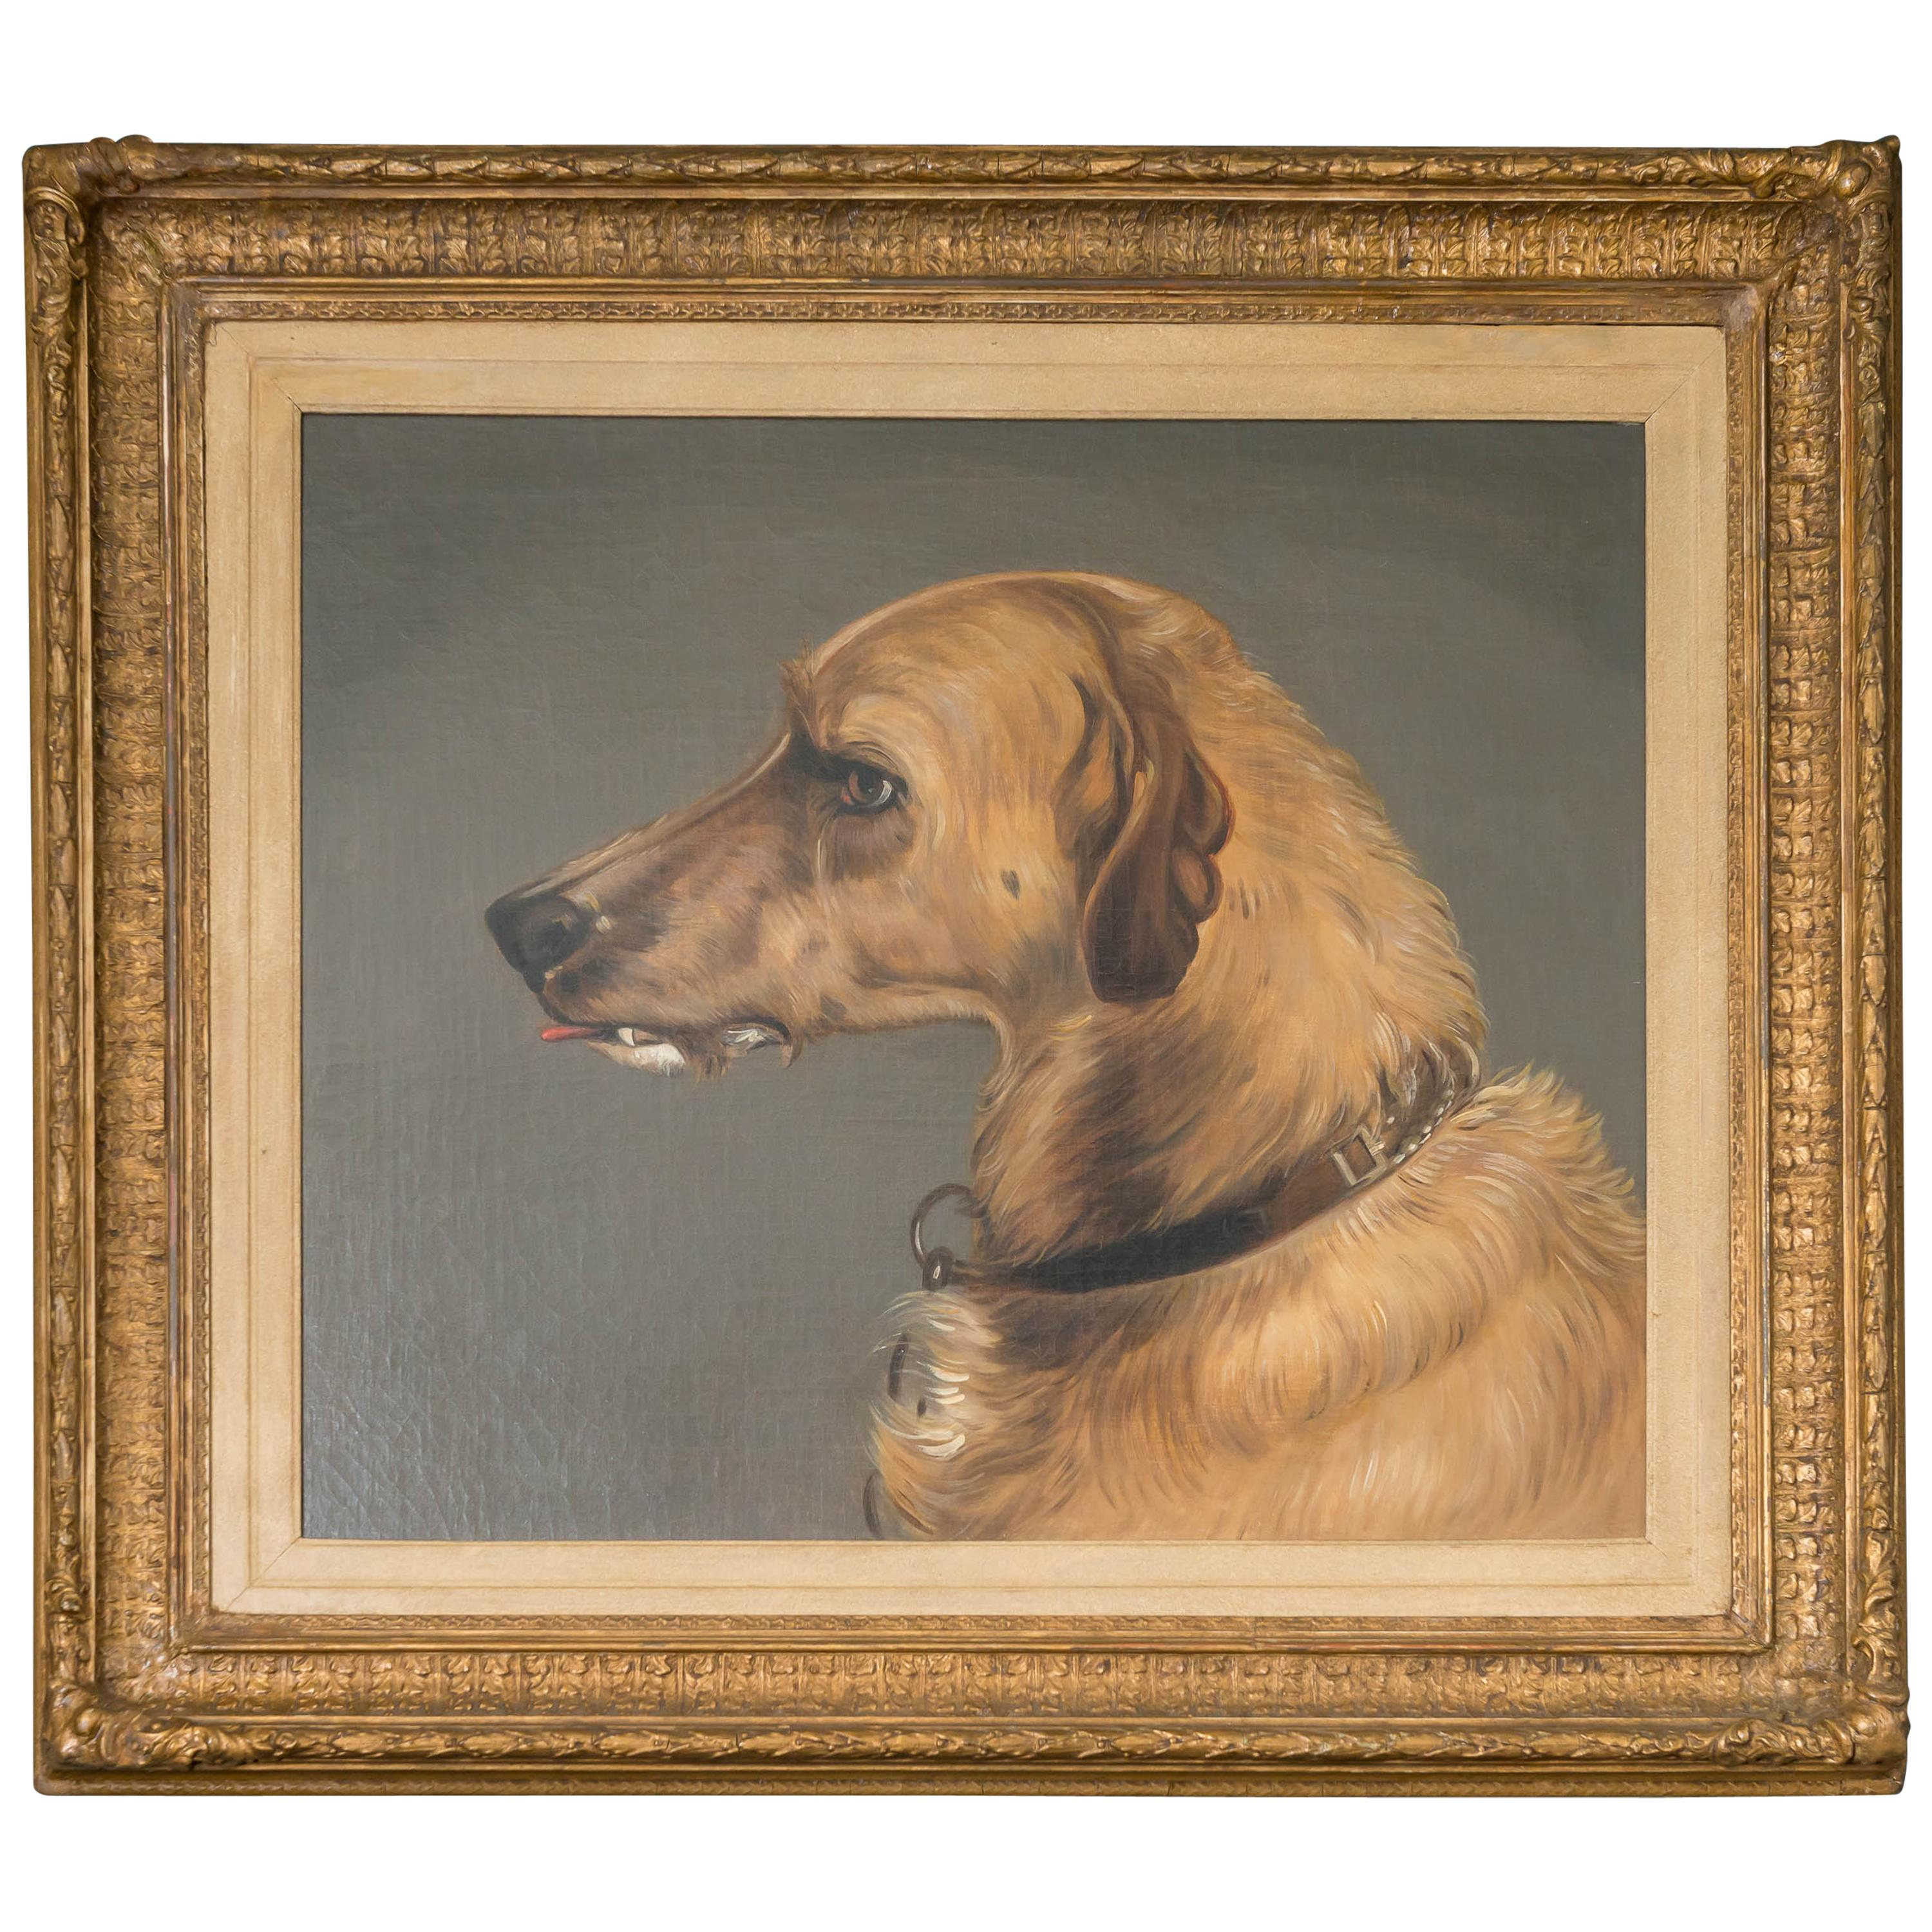 Fine 19th Century English Oil on Canvas Portrait of a Dog, after Edwin Landseer